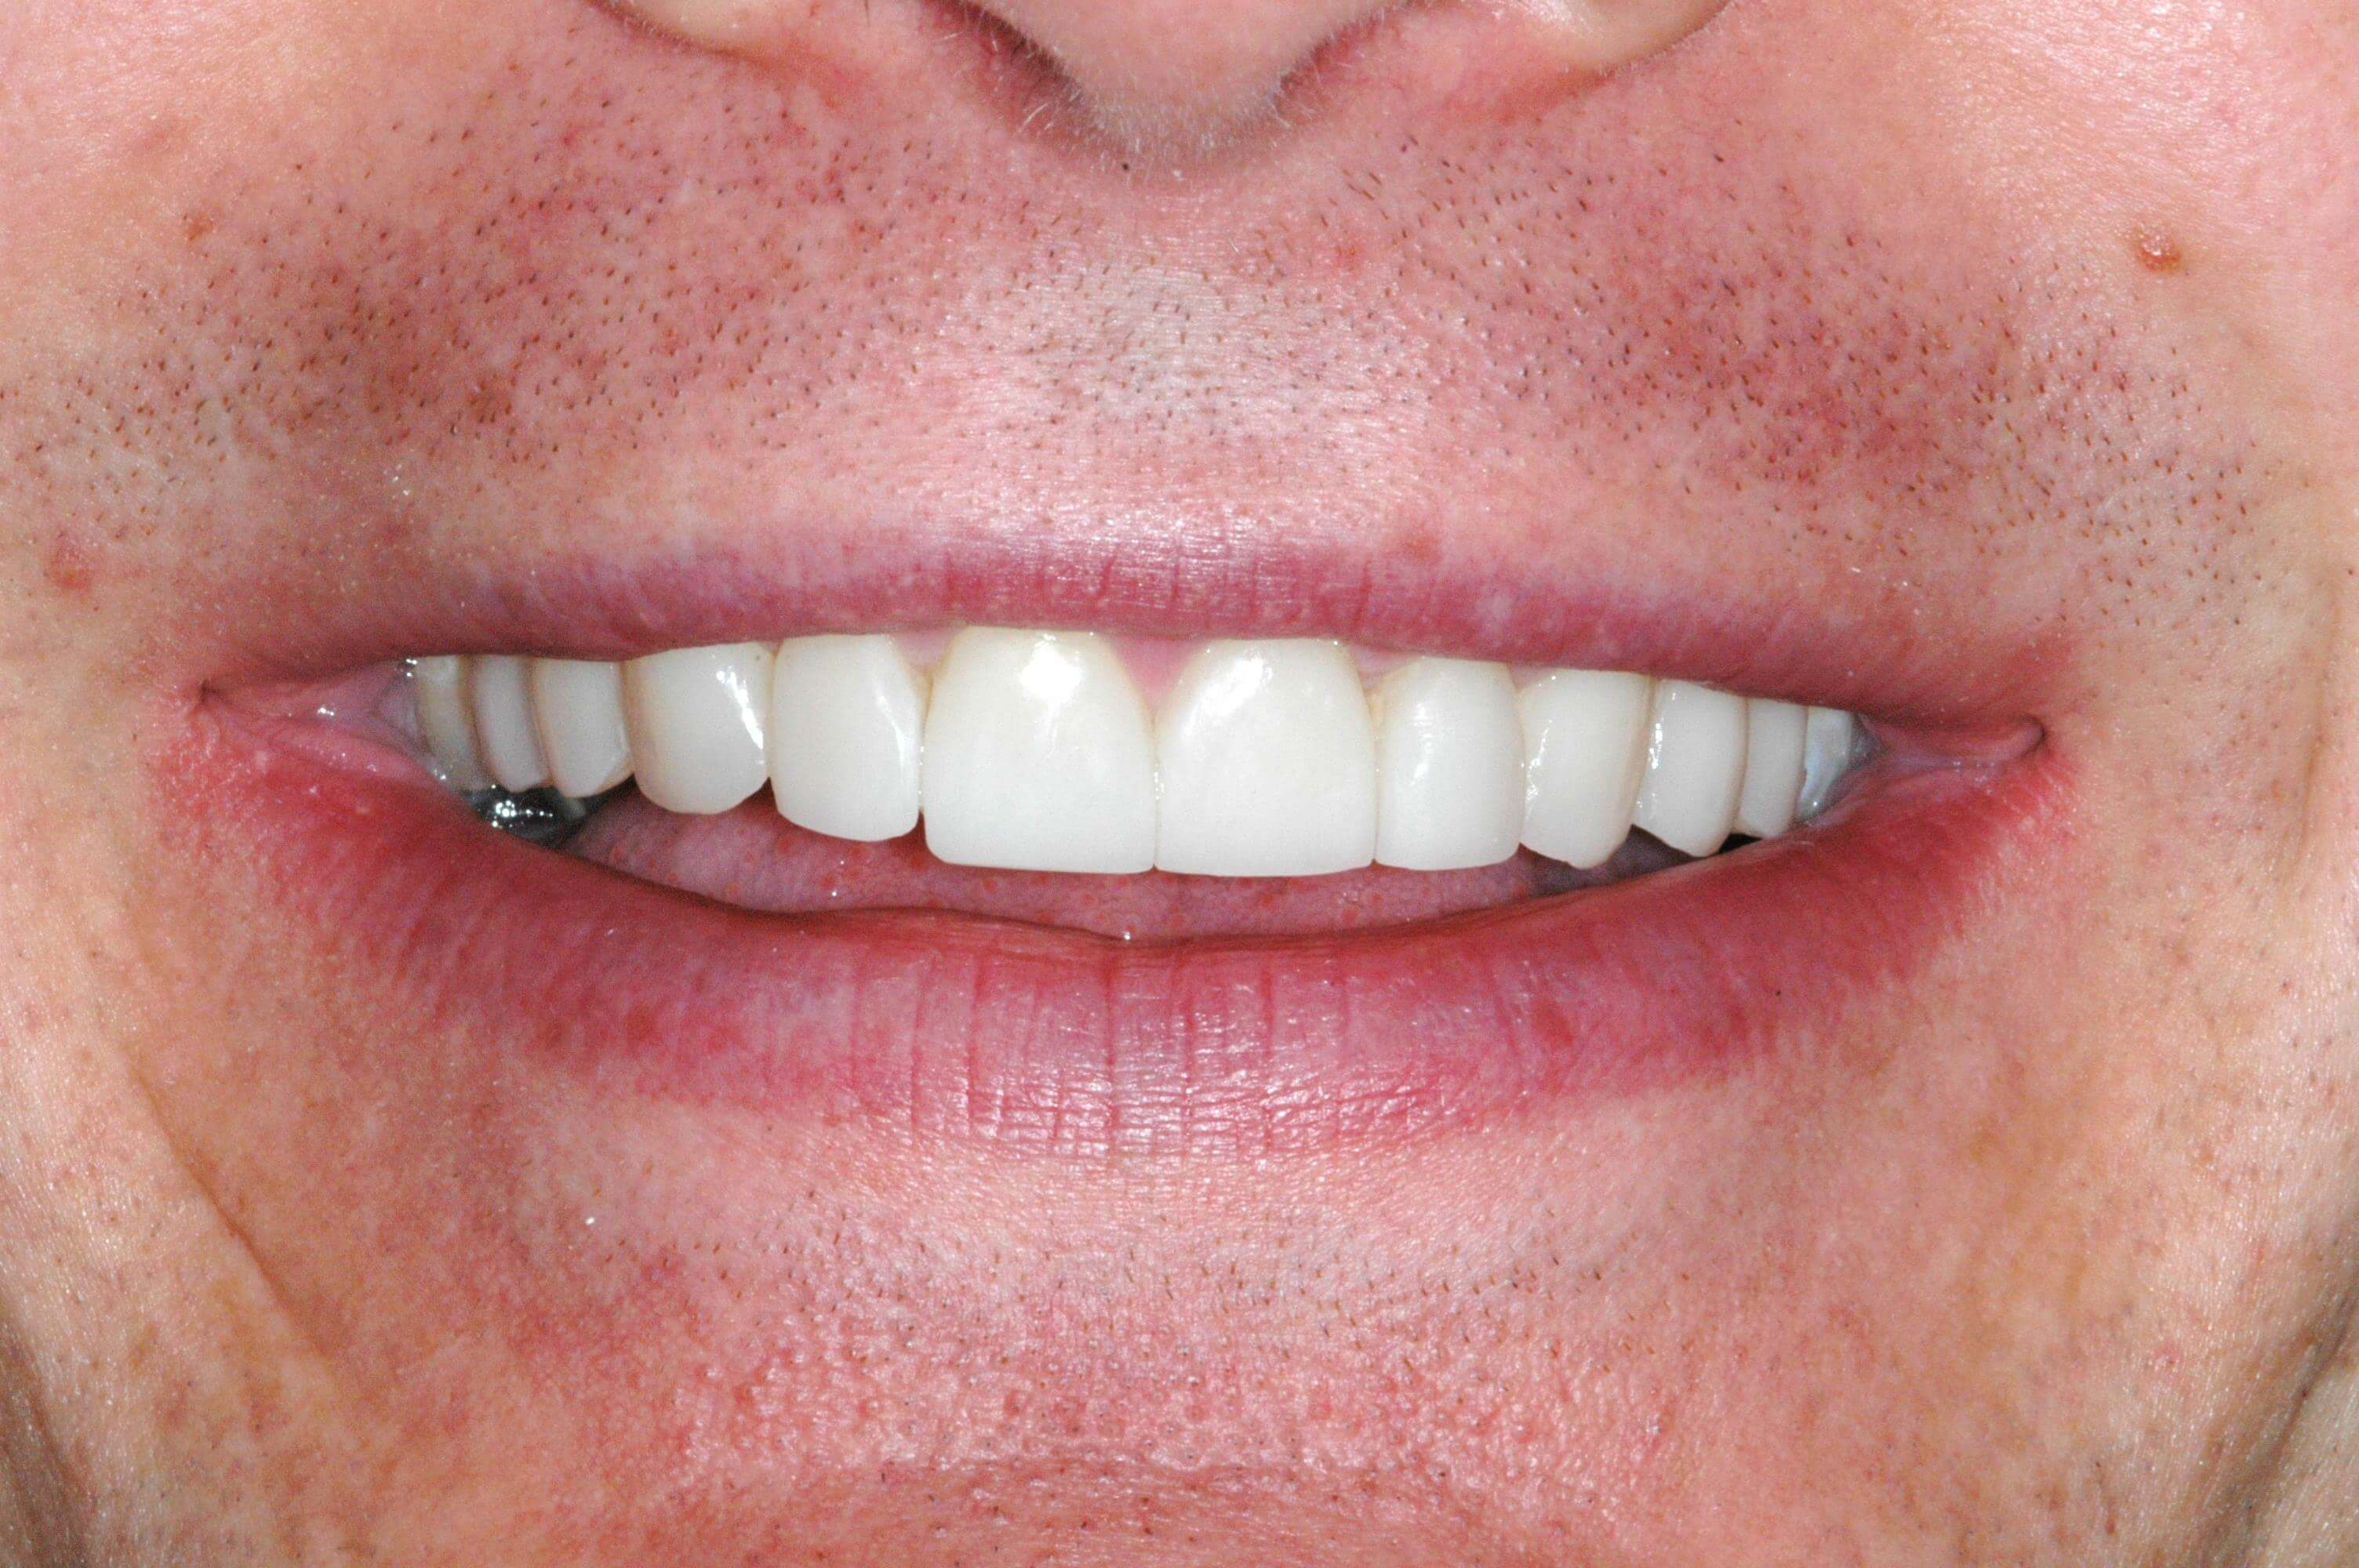 Washington DC Brand New Smile After